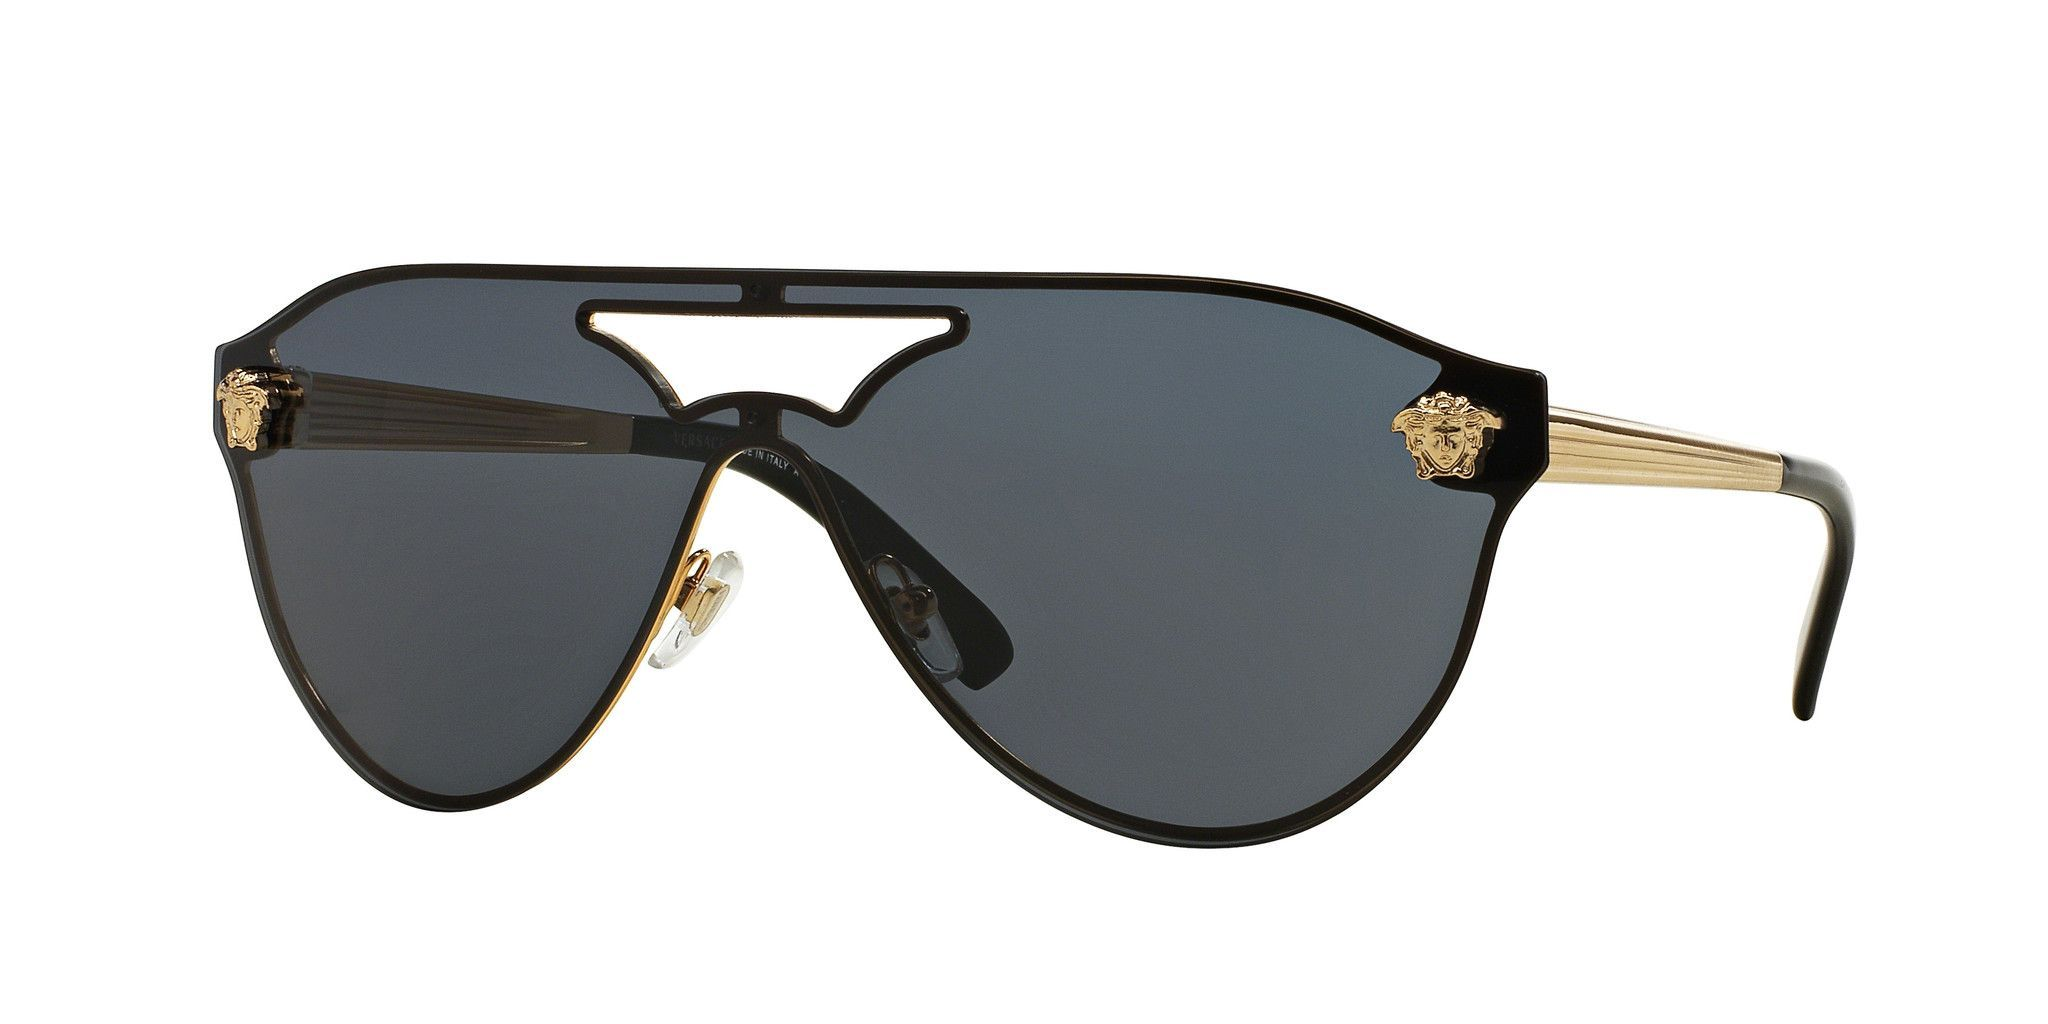 6887cad0d04f Versace VE2161 100287 42mm Sunglasses are a Medusa Visor style. Featuring  Medusas on the top left and right of the lens frame